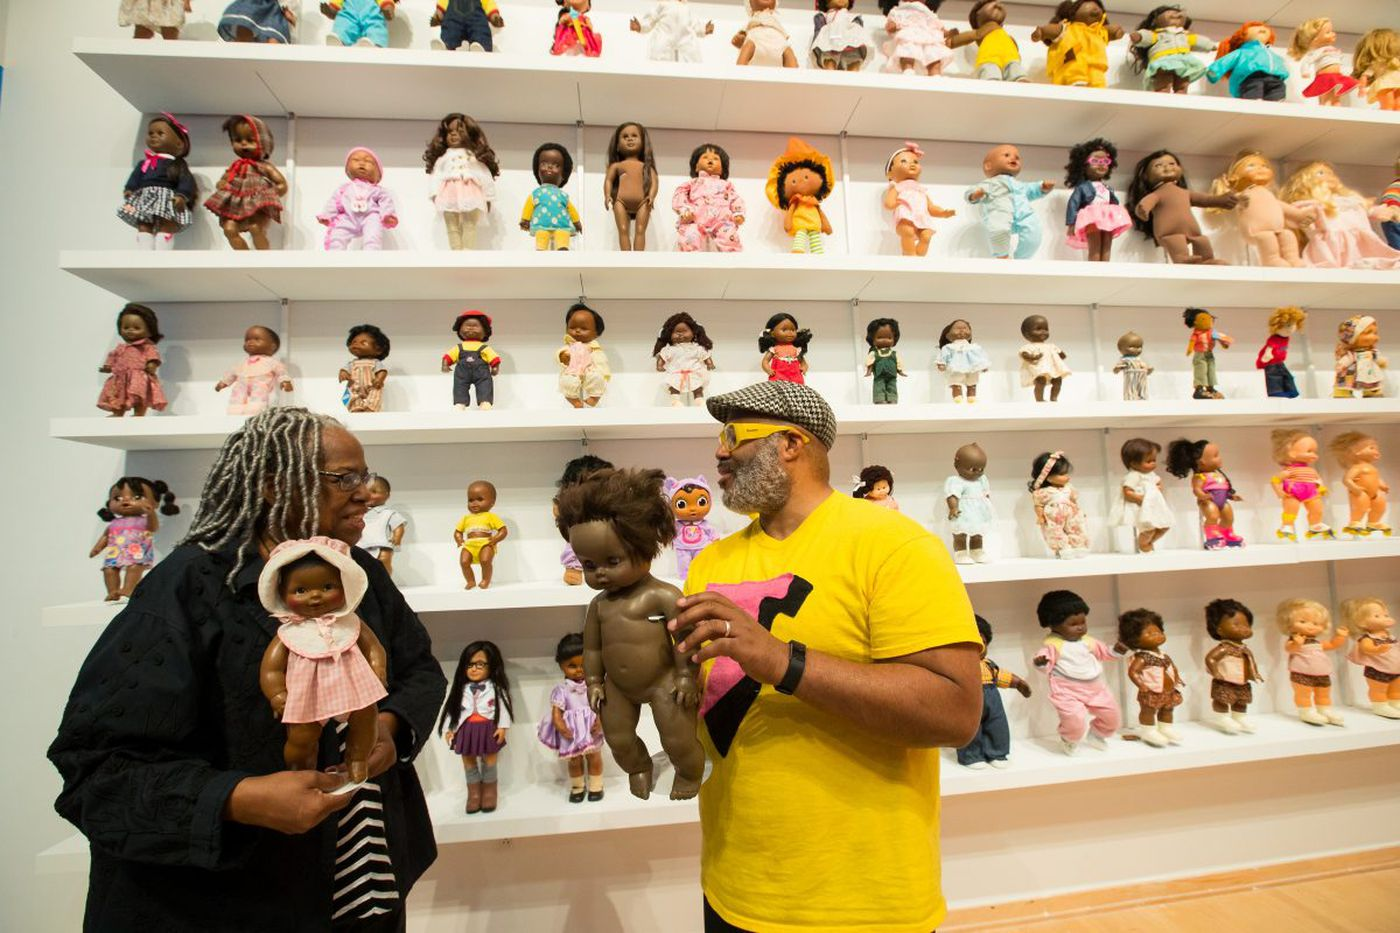 This Temple doll exhibit separates dolls by race, and reminds us that we're all the same | Elizabeth Wellington